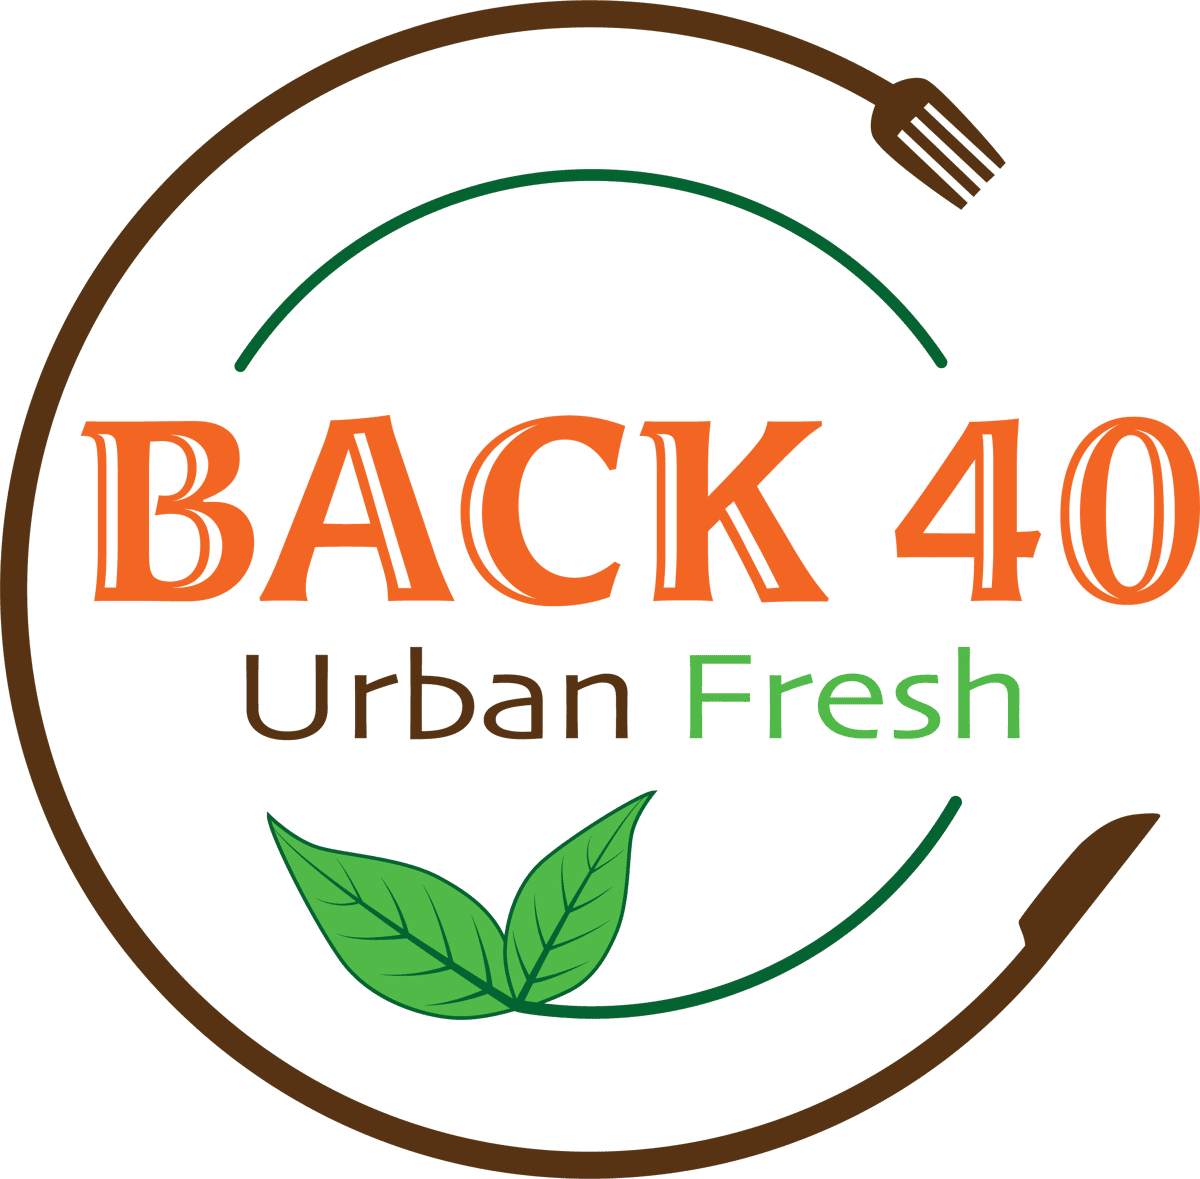 Back40 Urban Fresh